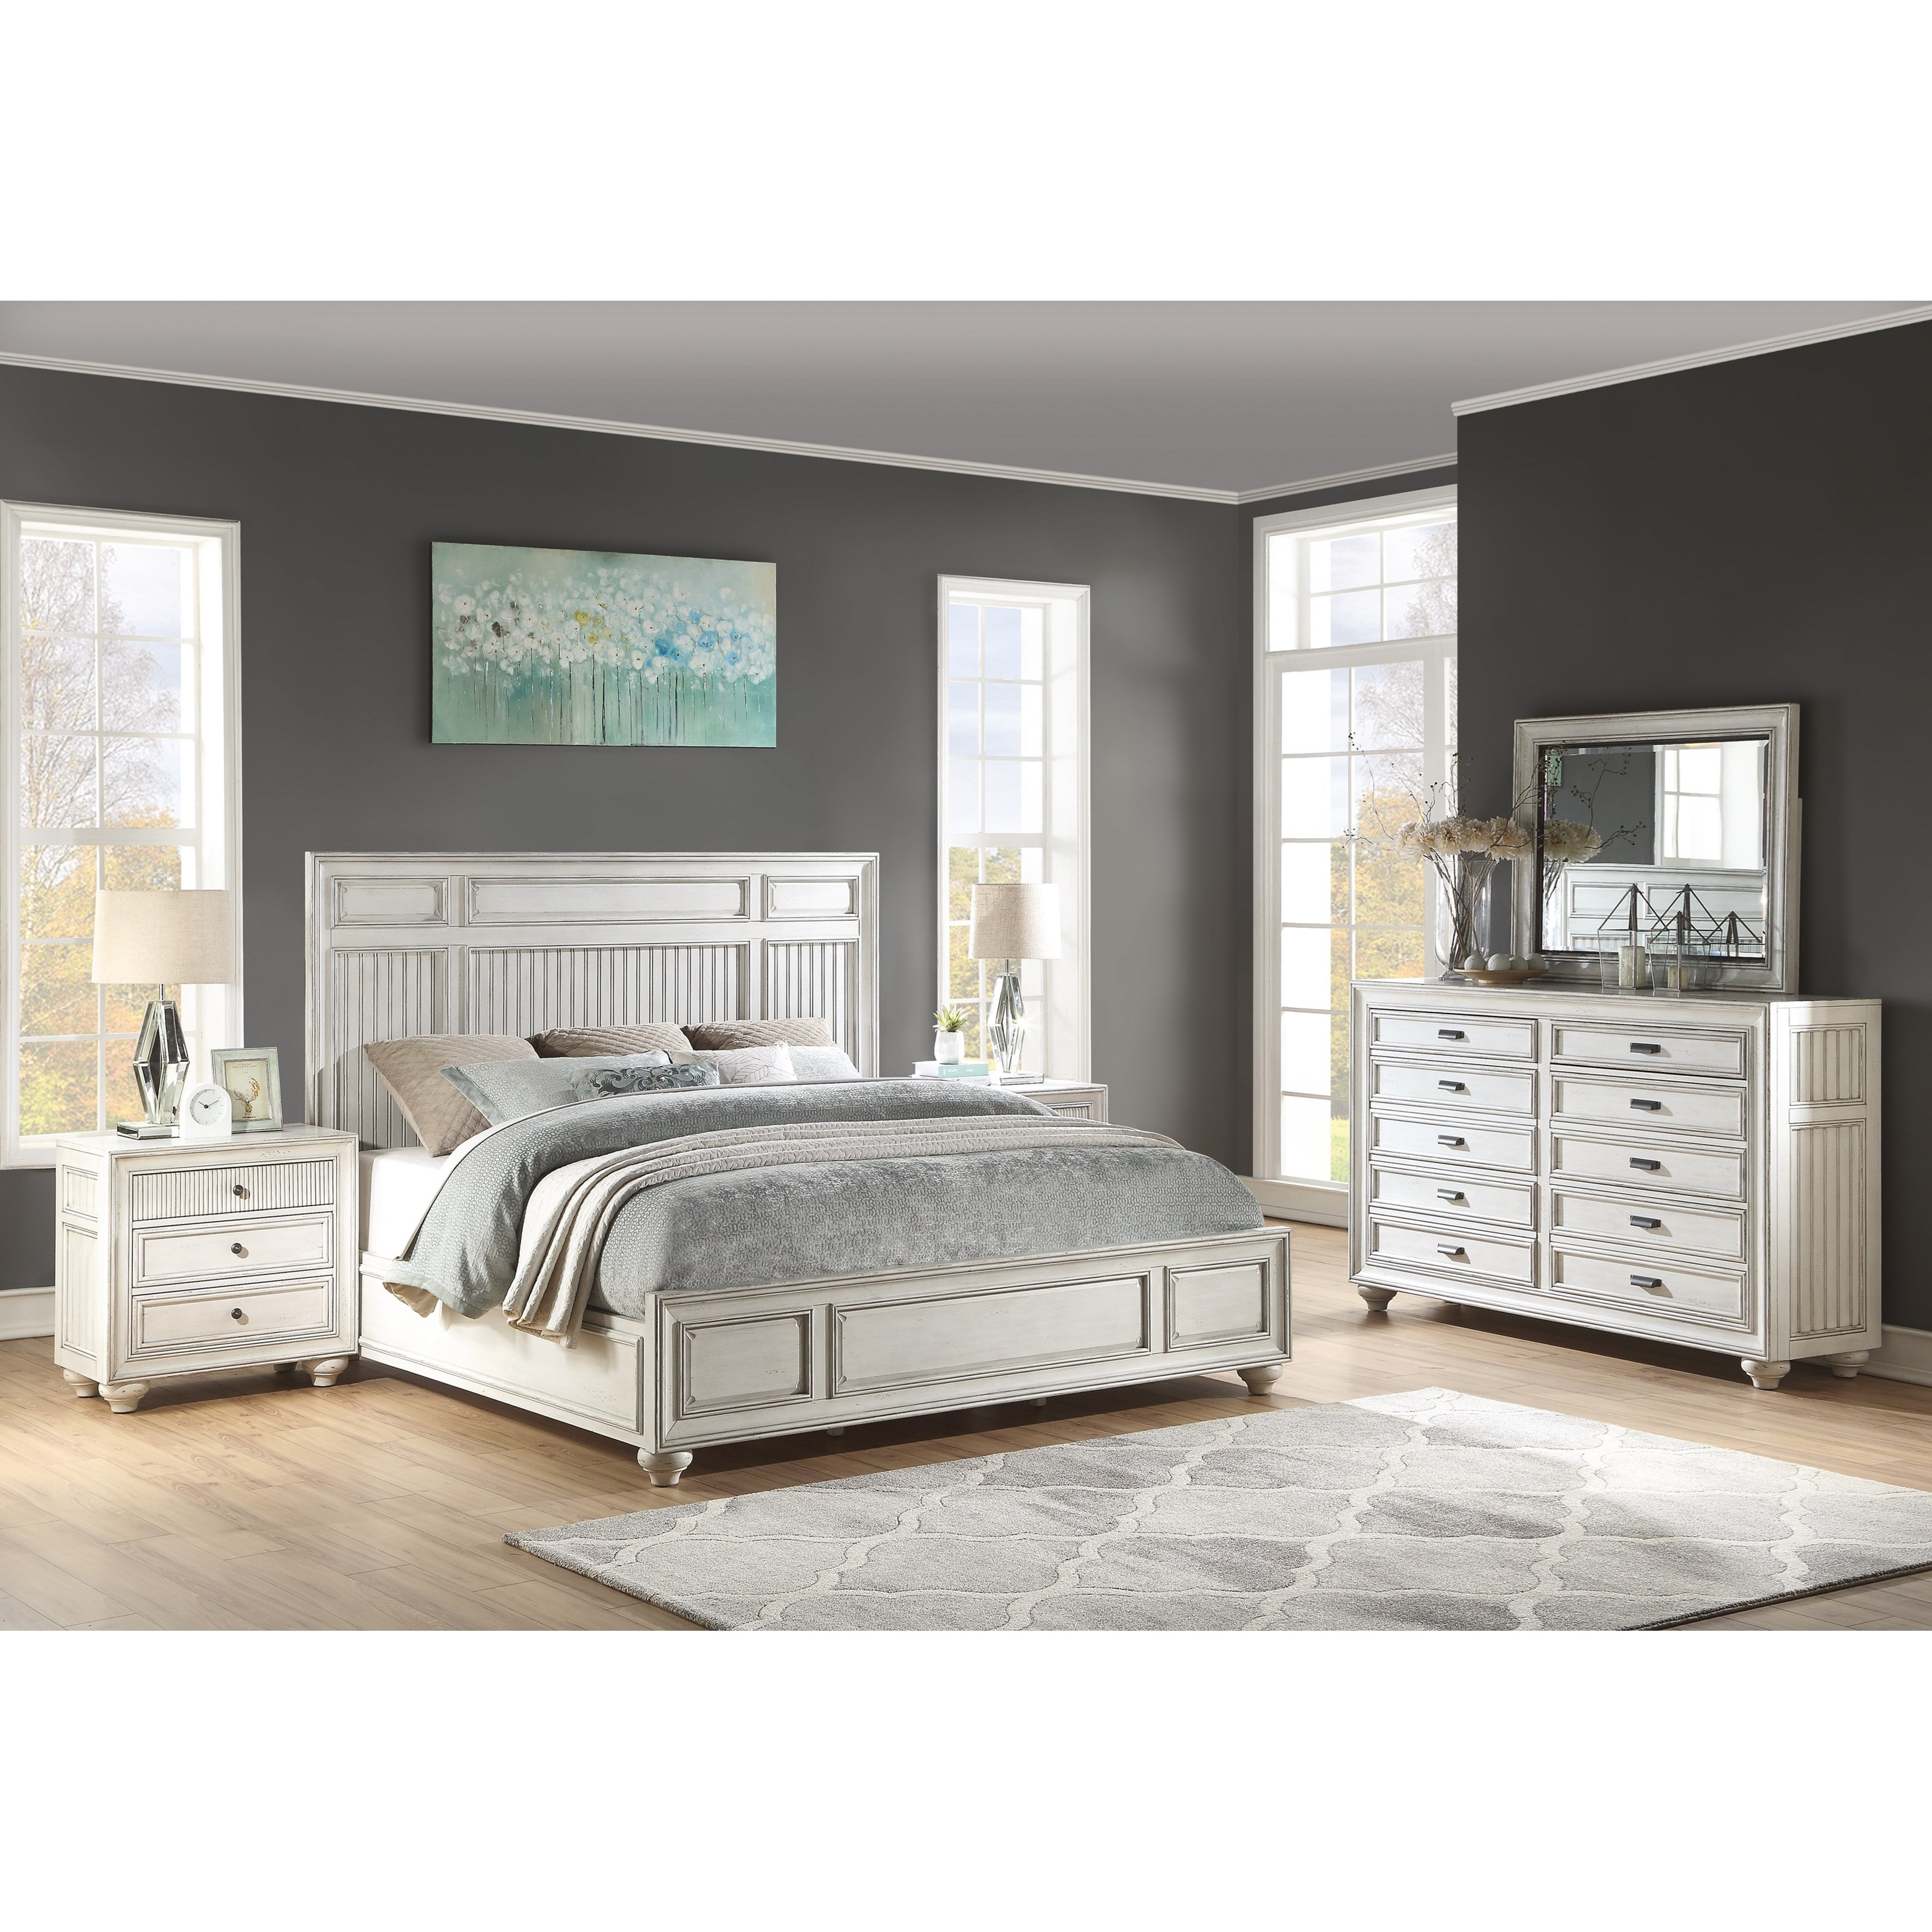 Harmony California King Bedroom Group by Flexsteel Wynwood Collection at Northeast Factory Direct